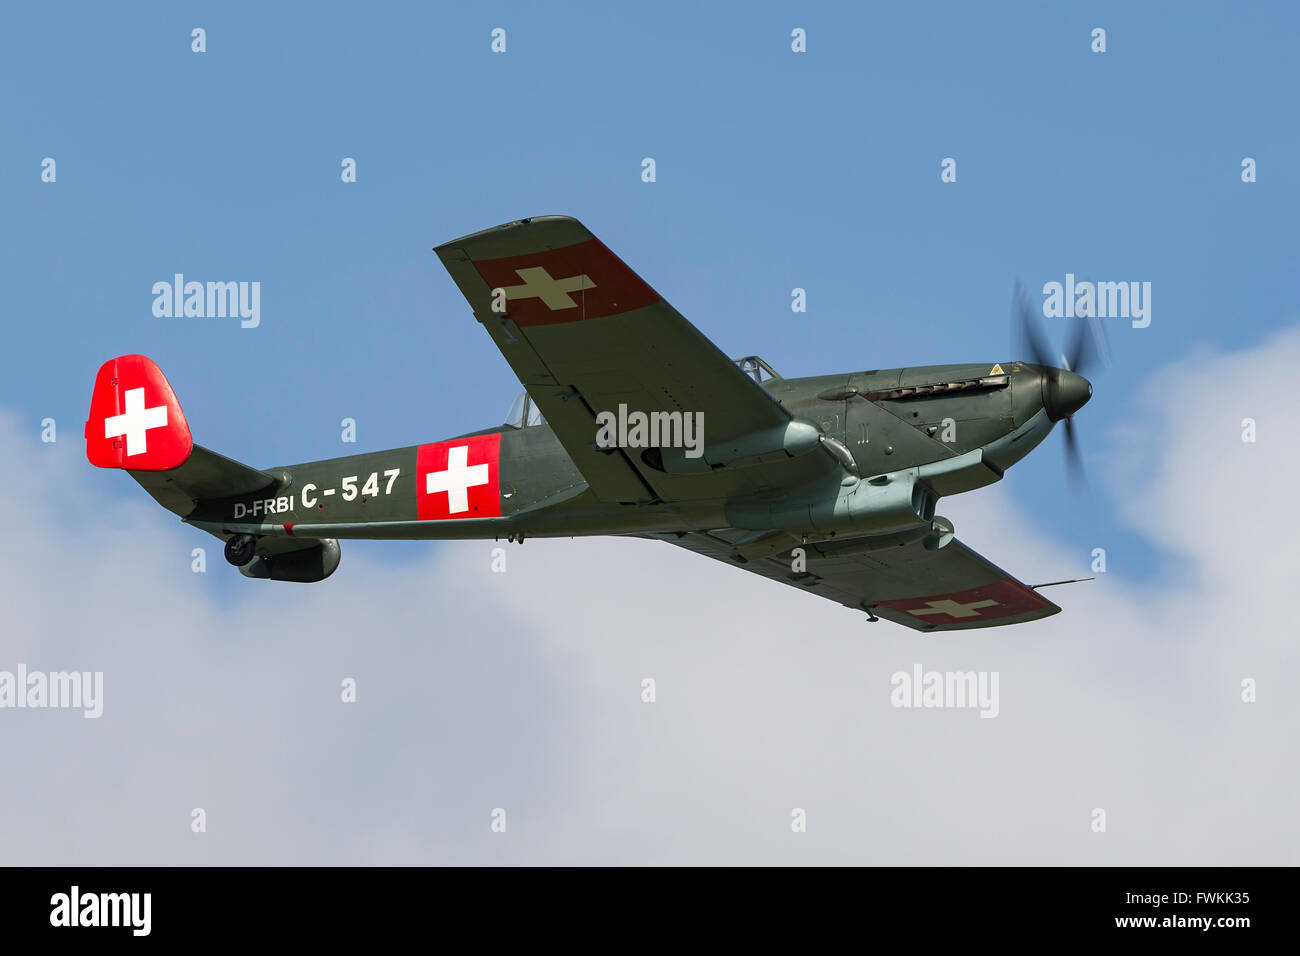 EKW C-3603 (D-FRBI), a Swiss multi-purpose combat aircraft built by the in the 1930's -1940's.